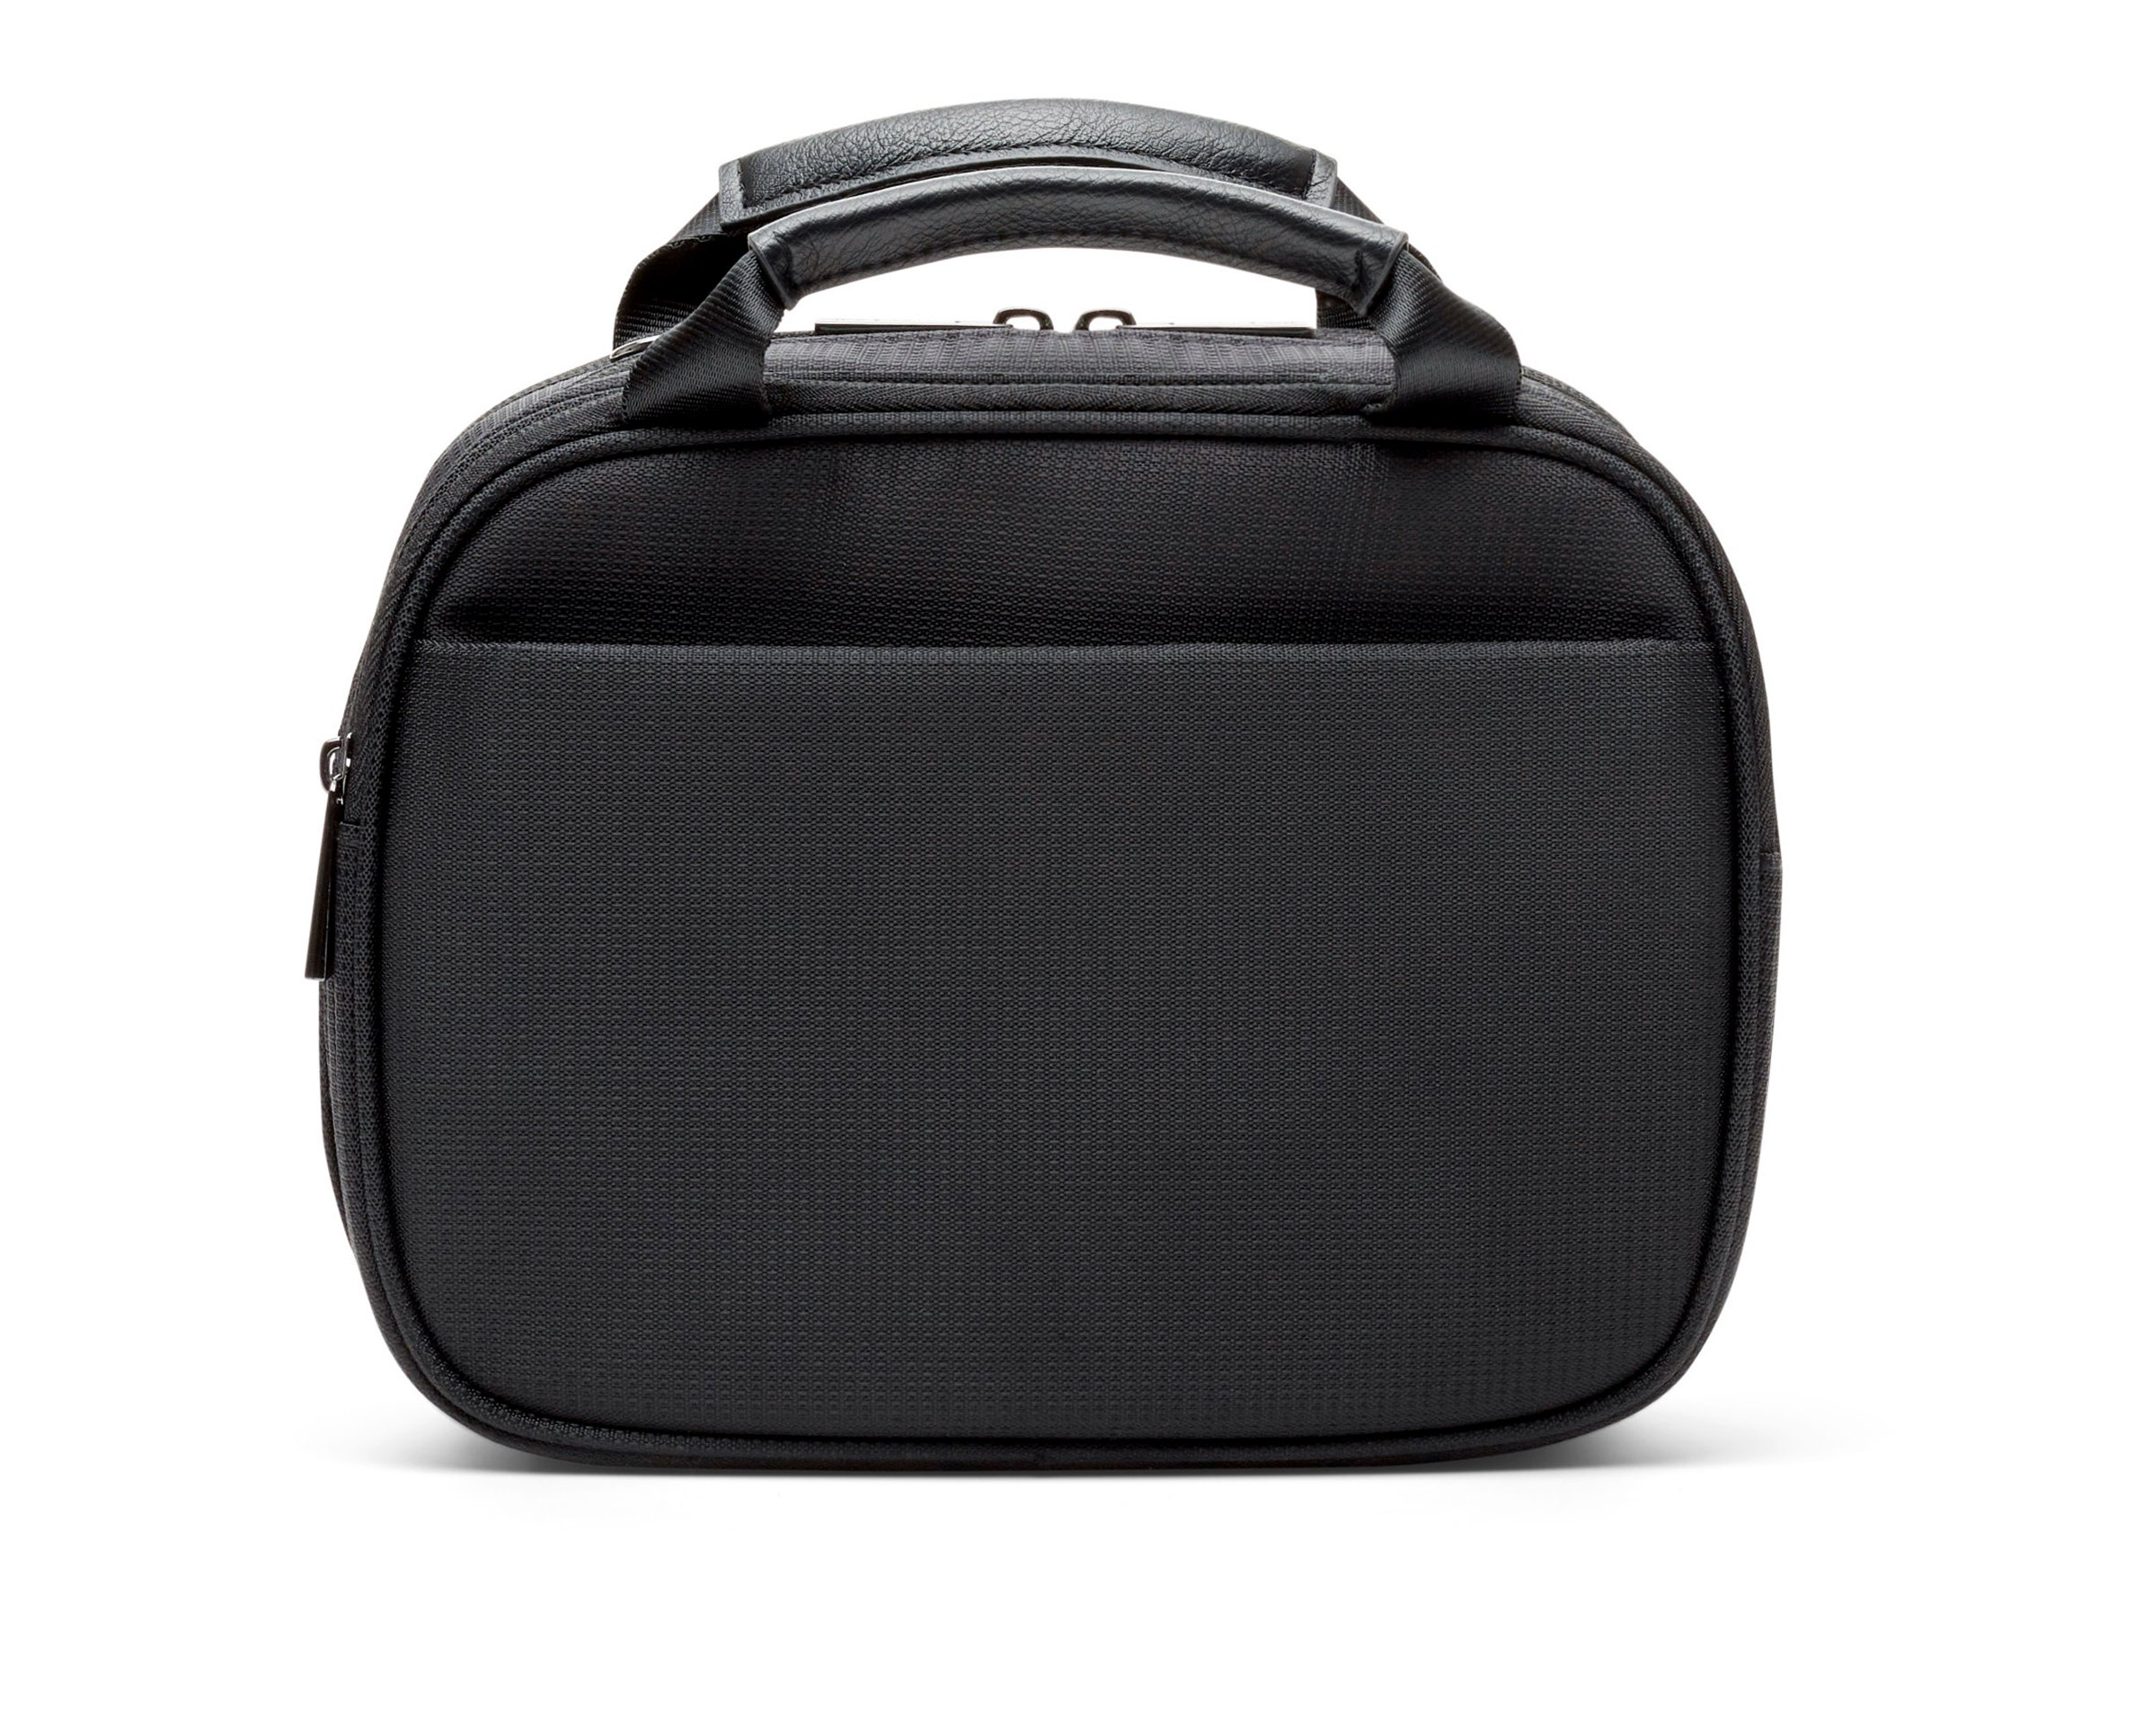 Myabetic Thompson Diabetes Travel Case For Glucose Monitoring Tools, Insulin Pens, Syringes, Etc Includes Insulation Lining - High Quality Materials (Black Nylon)